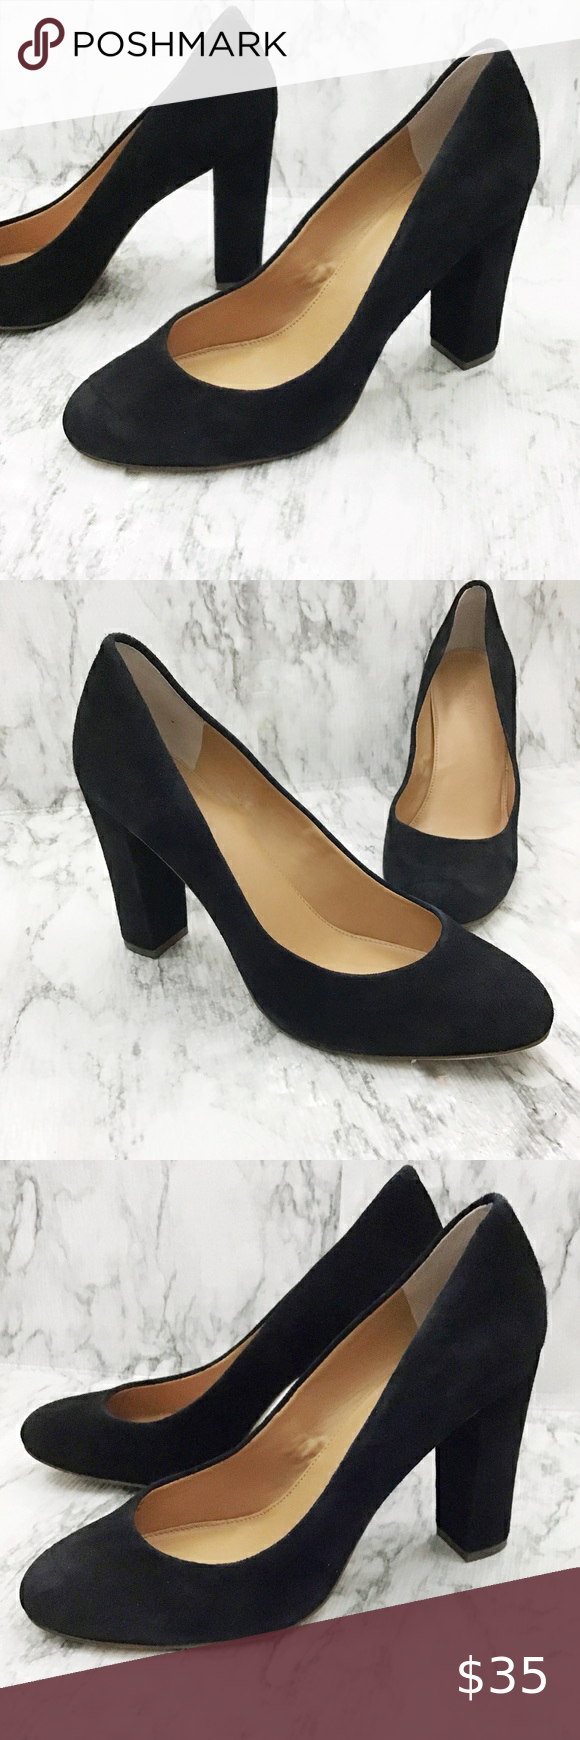 J Crew Factory Suede Pumps Black Size 9 5 In 2020 Black Suede Pumps Suede Pumps Shoes Women Heels